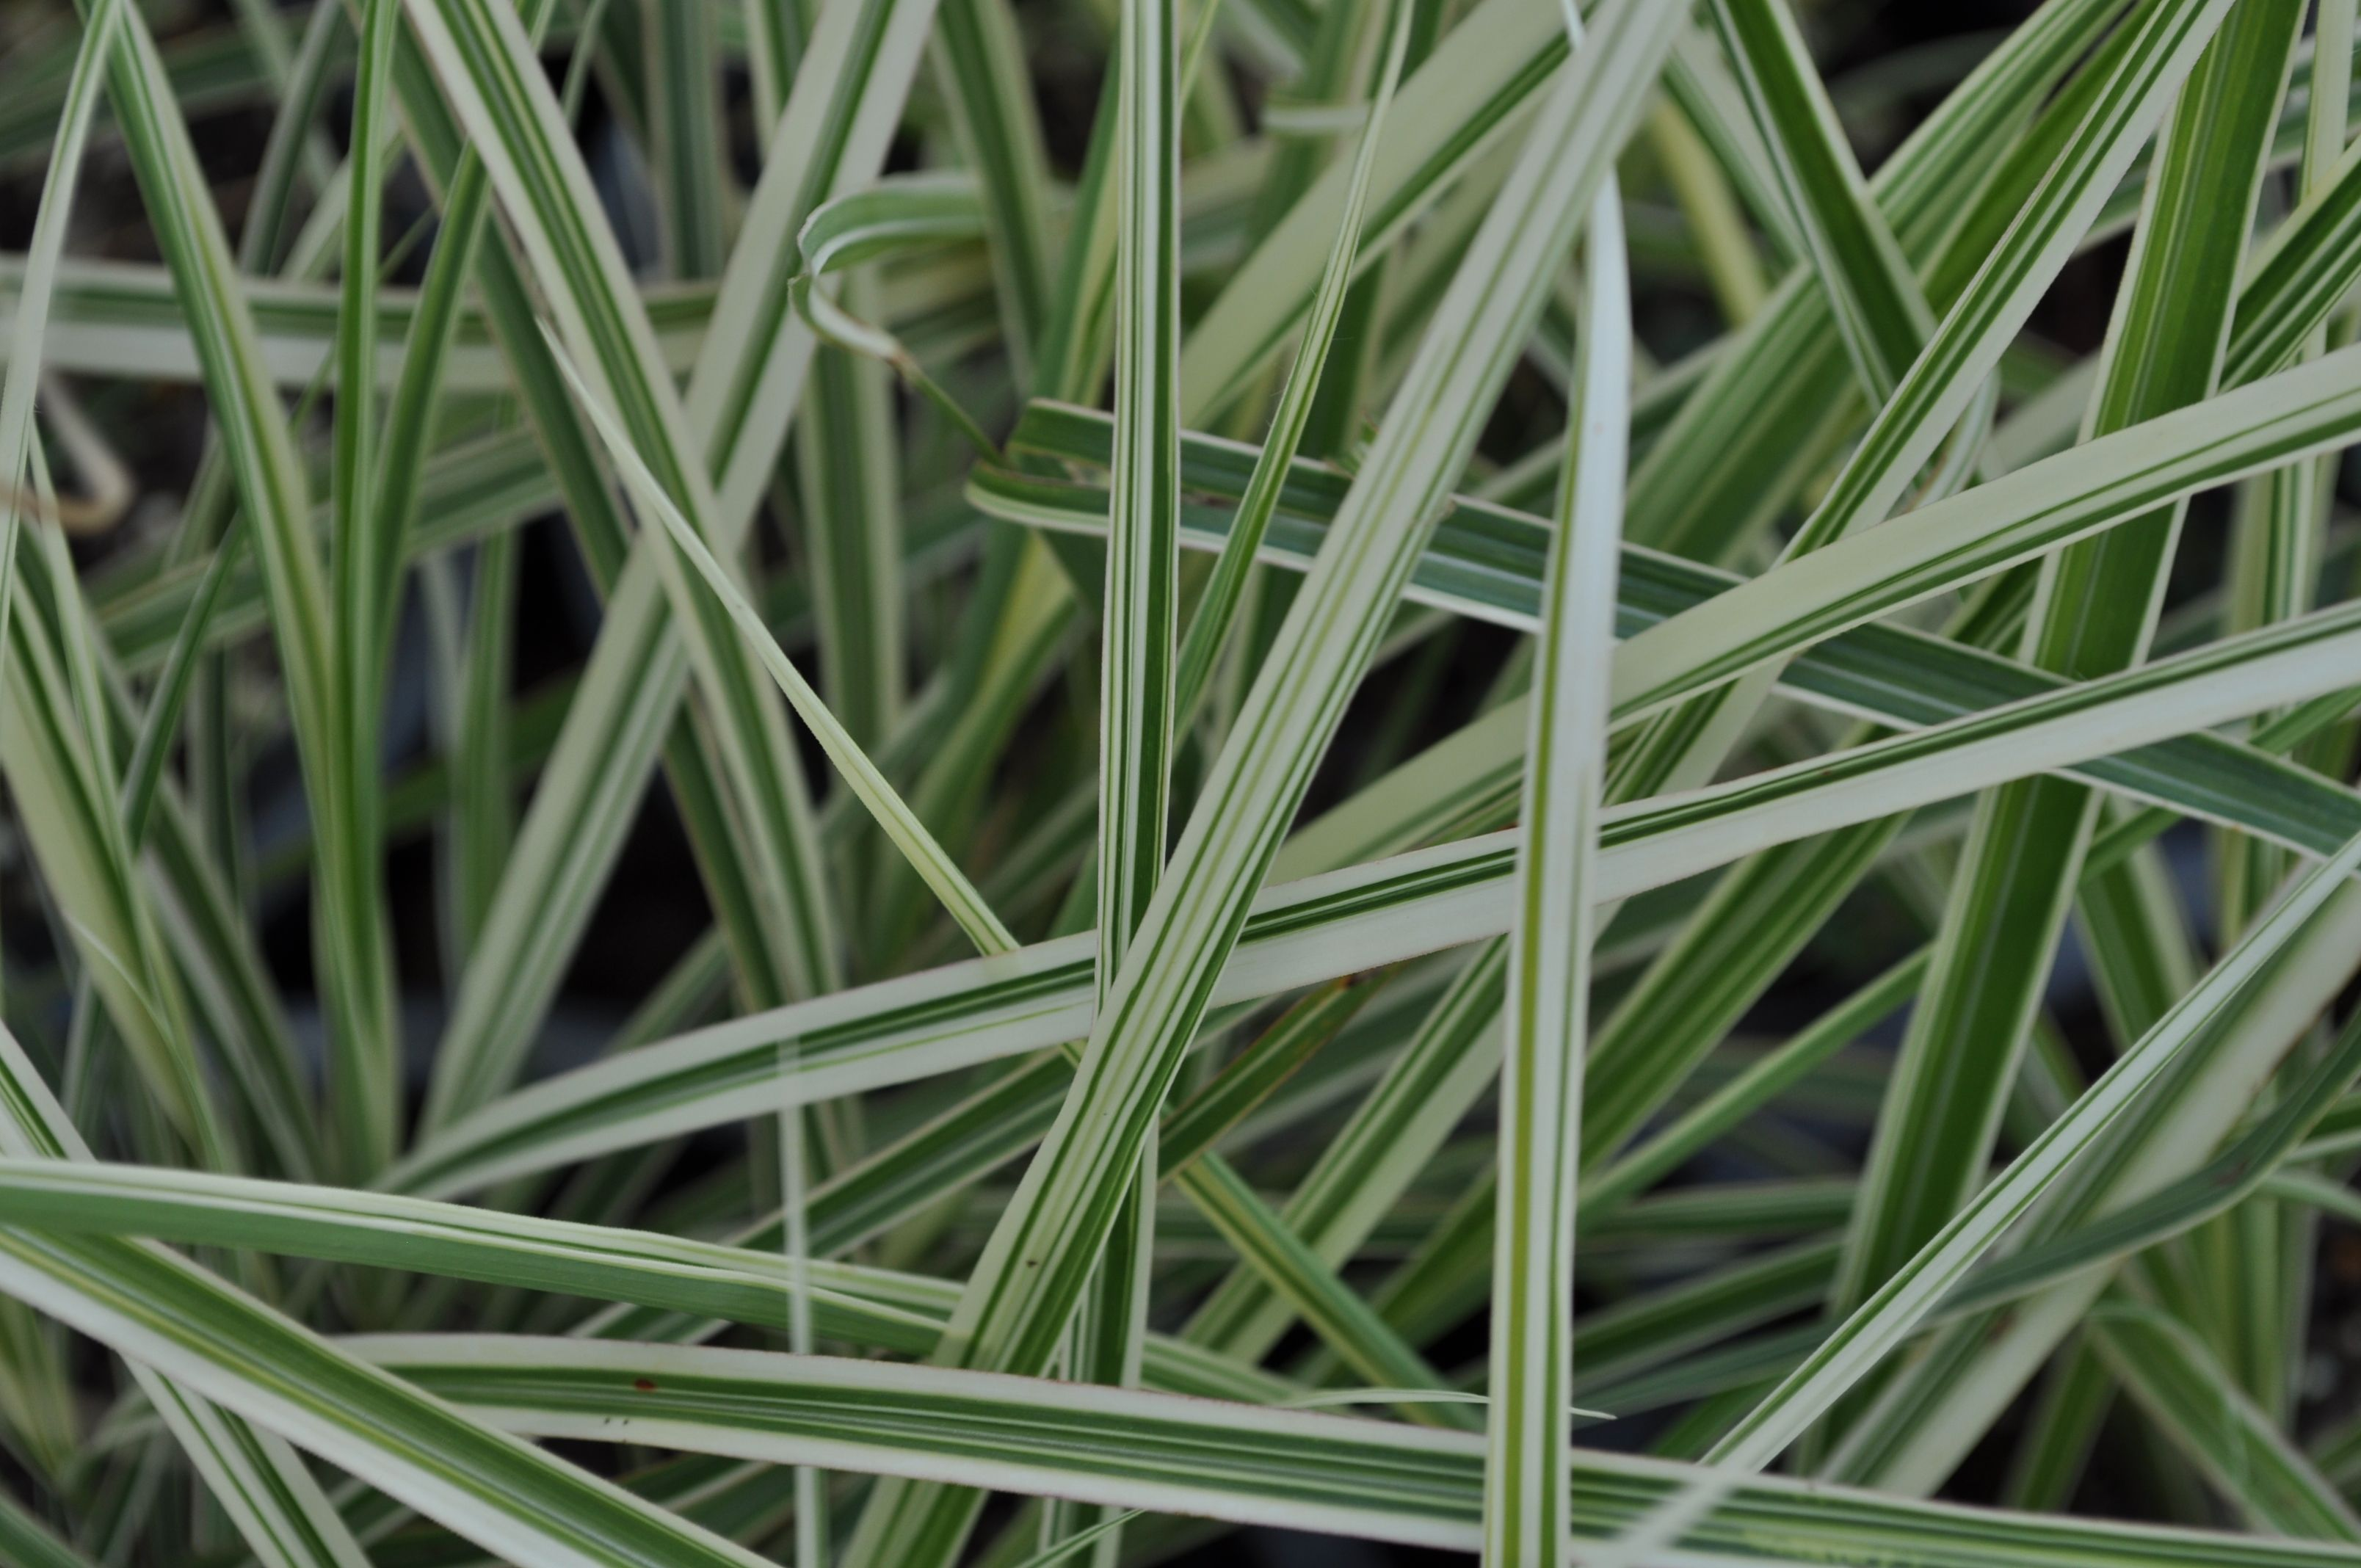 Miscanthus 39 variegatus 39 common name variegated maiden for Small ornamental grasses for sun